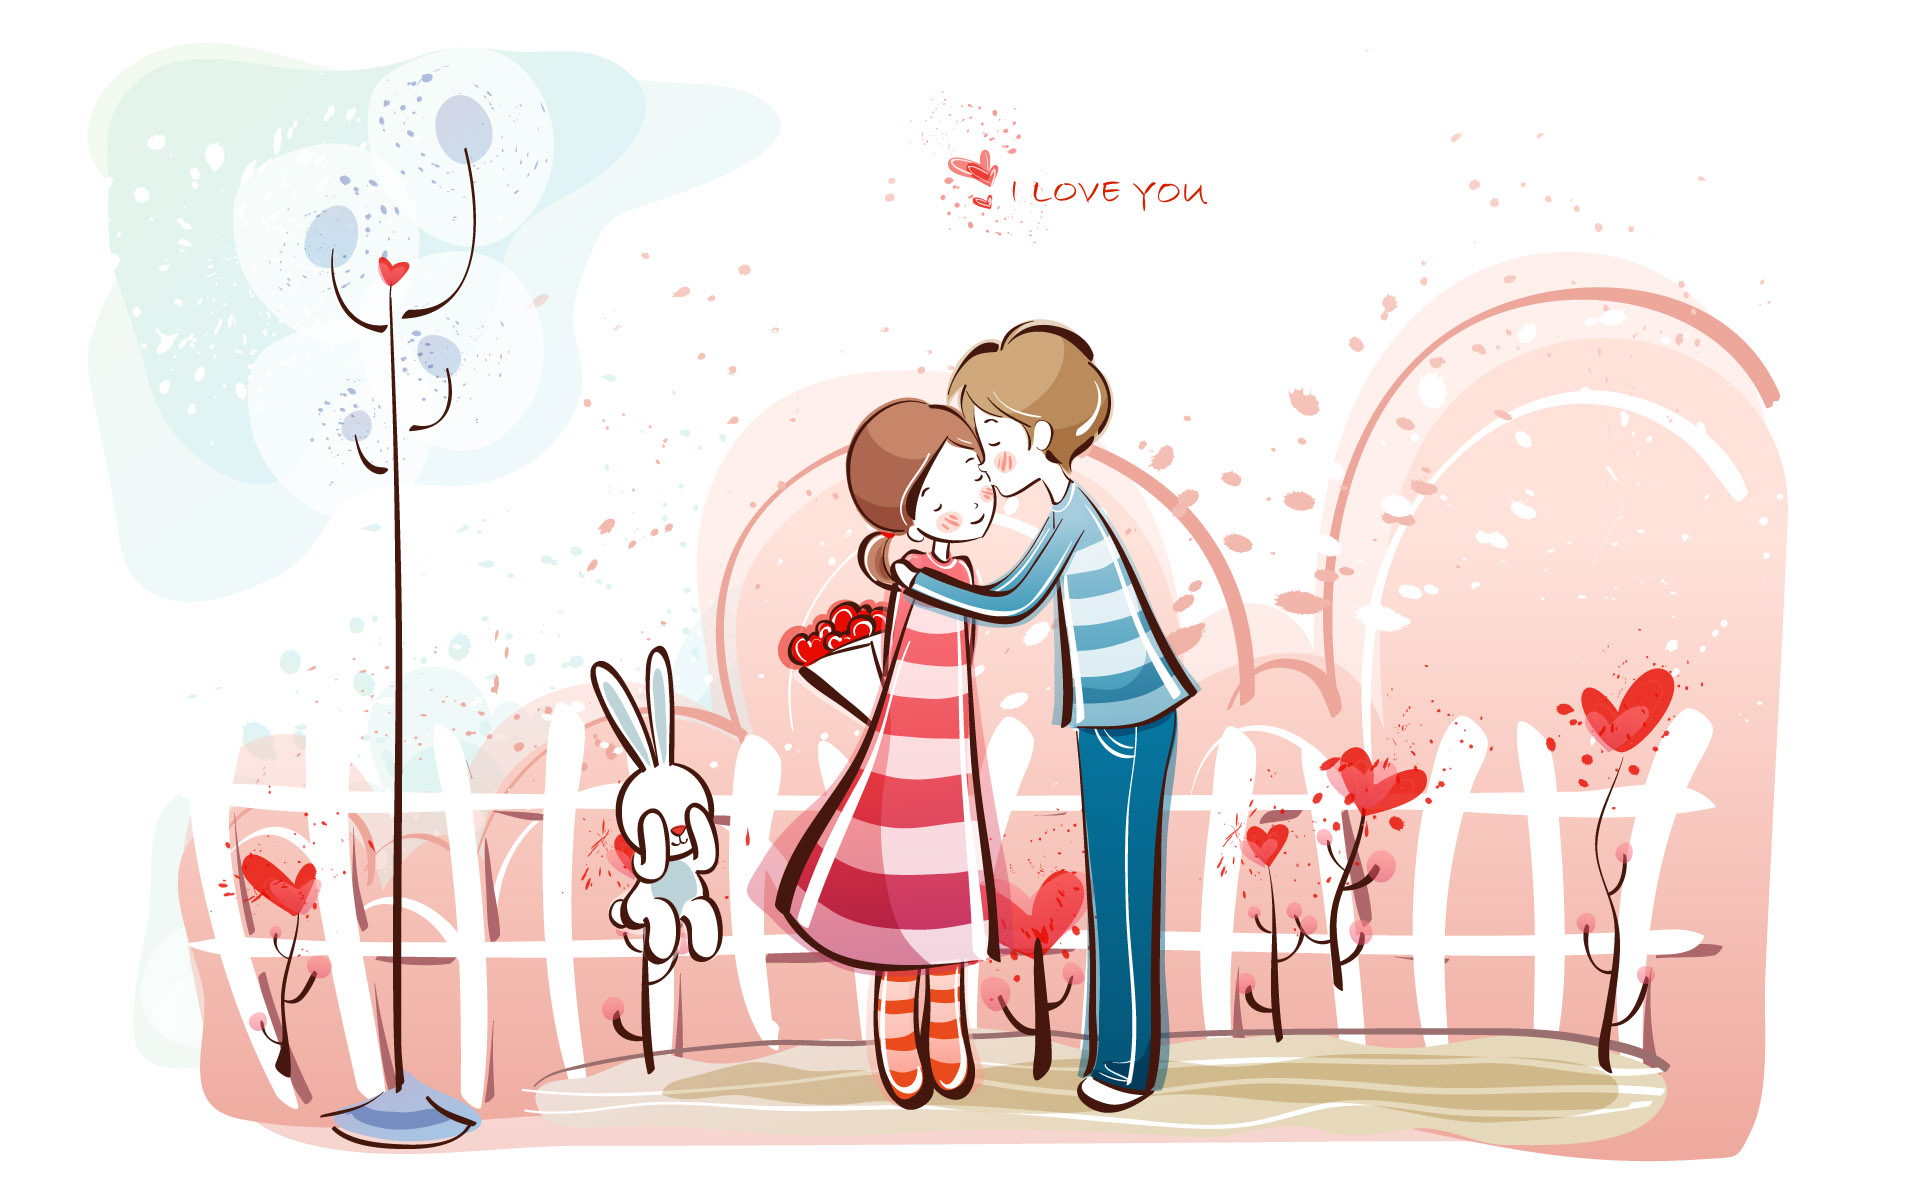 Romantic Valentine's Day illustration class 9805